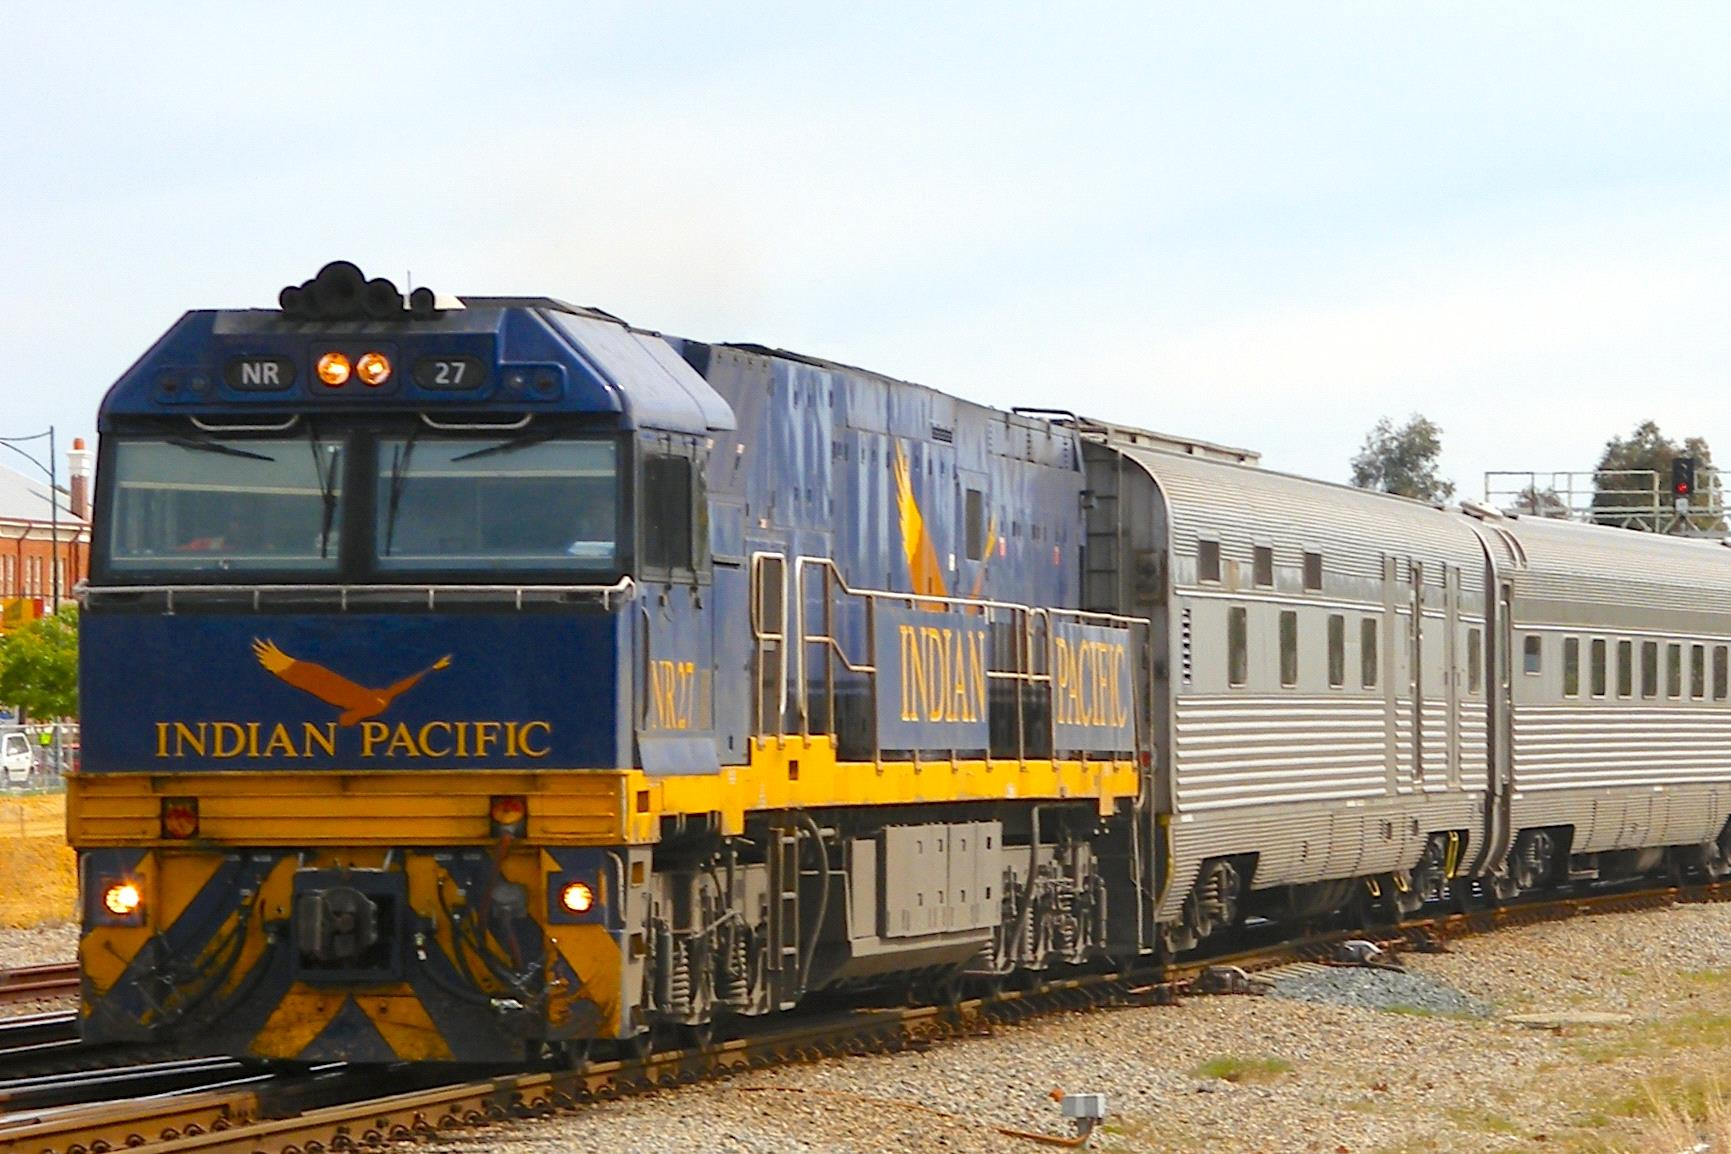 I'll chug off quietly into the night if the horse with the same name as this iconic train doesn't run well on Saturday.